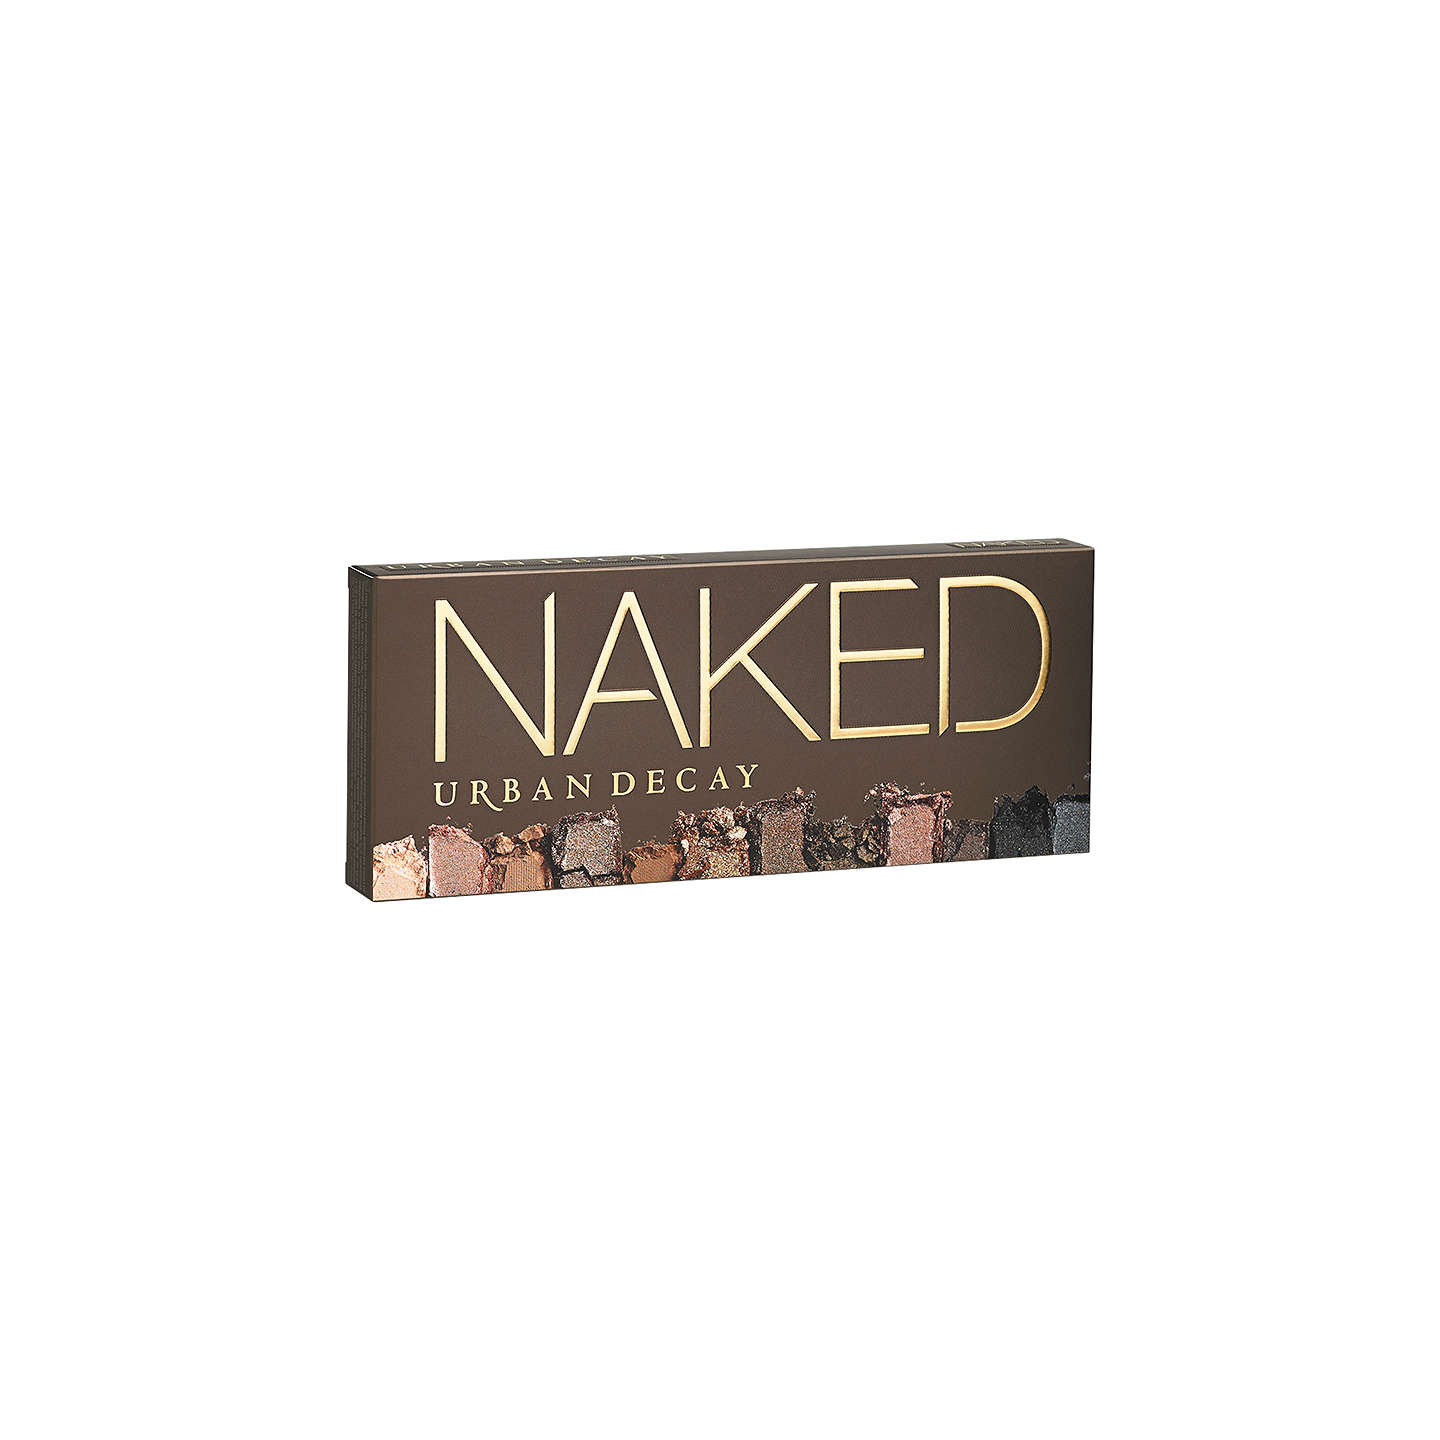 BuyUrban Decay Eyeshadow Palette, Naked Online at johnlewis.com